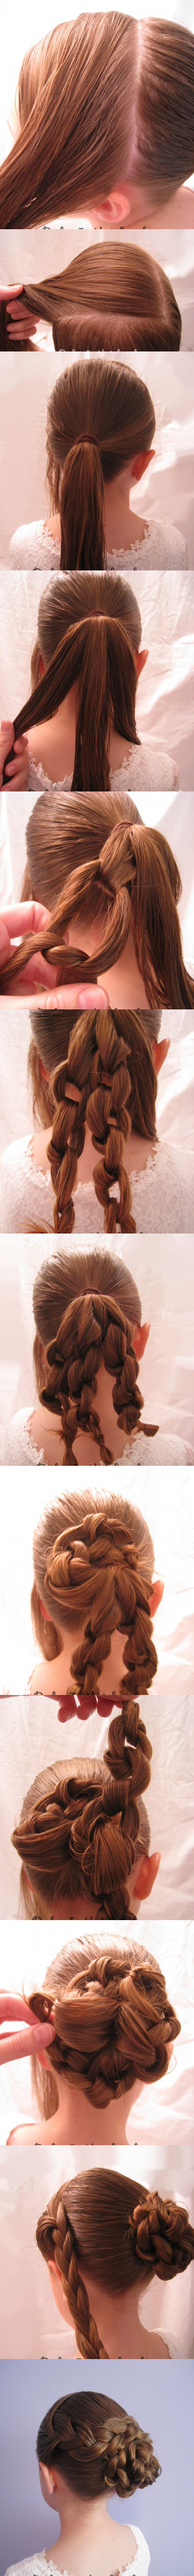 Magnificent Super Easy Knotted Bun Updo And Simple Bun Hairstyle Tutorials Short Hairstyles Gunalazisus